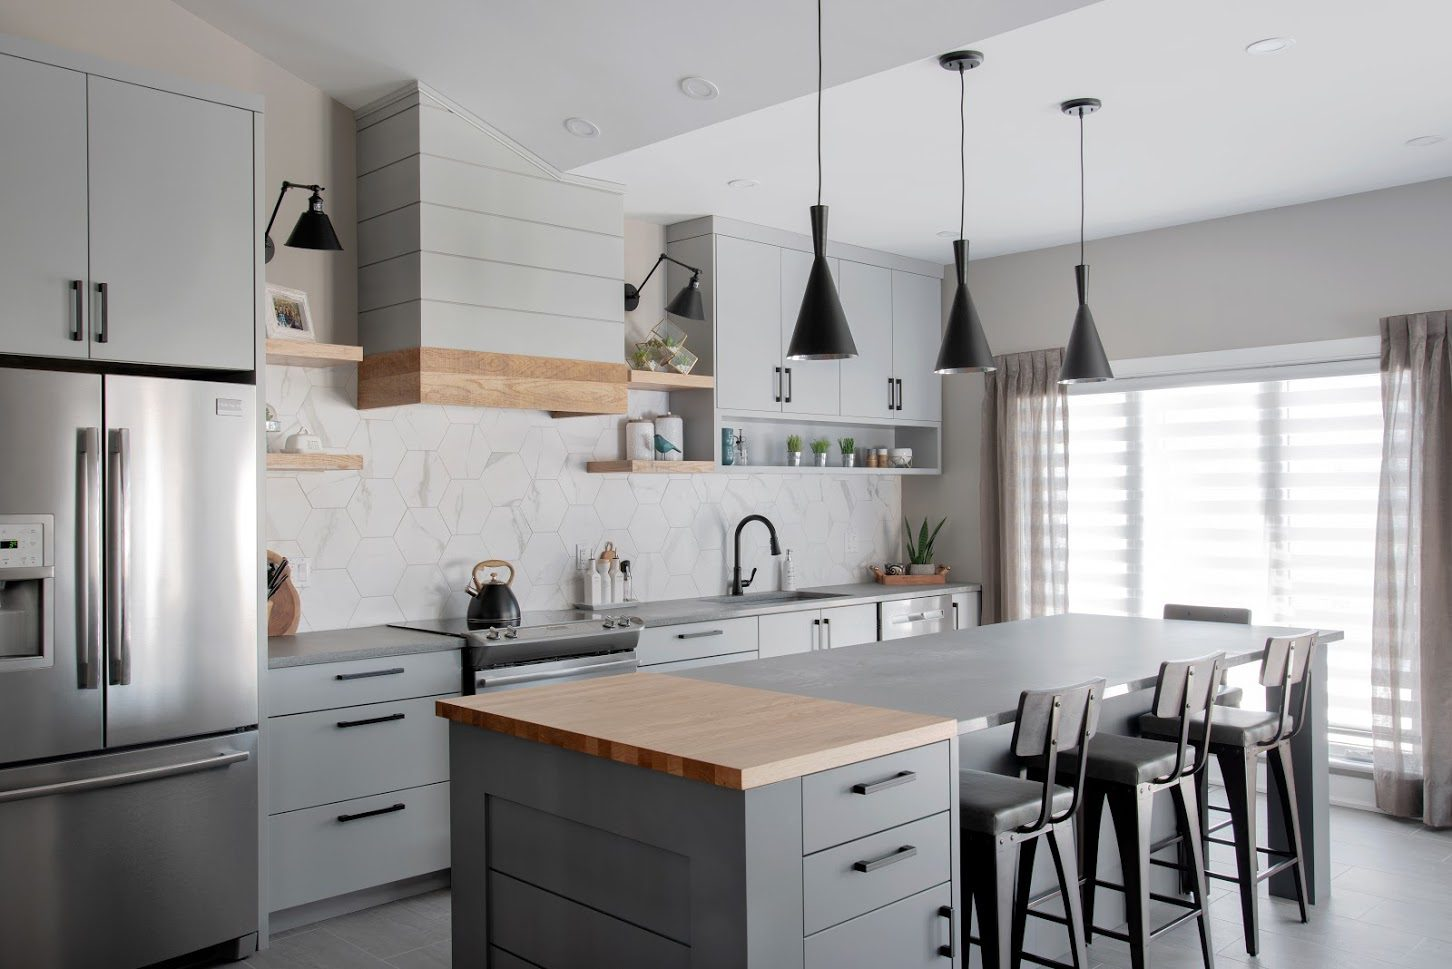 Remodelled kitchen with wood features